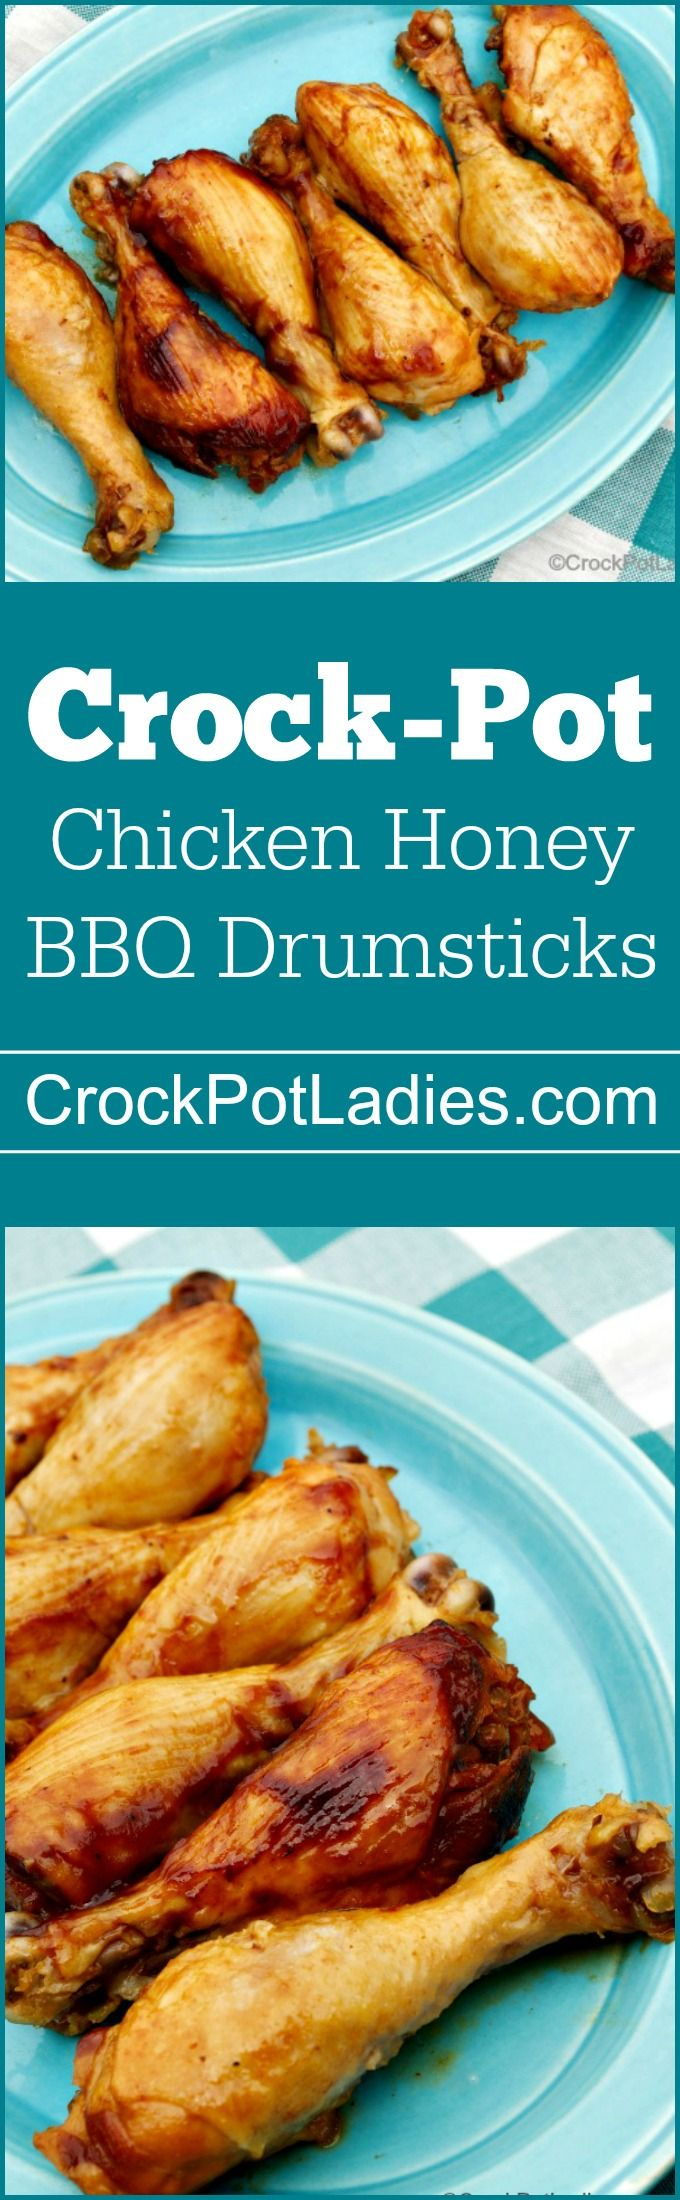 Crock-Pot Chicken Honey BBQ Drumsticks - With just three ingredients (chicken legs, barbecue sauce and honey) this recipe for Crock-Pot Chicken Honey BBQ Drumsticks is sure to please everyone! via @CrockPotLadies